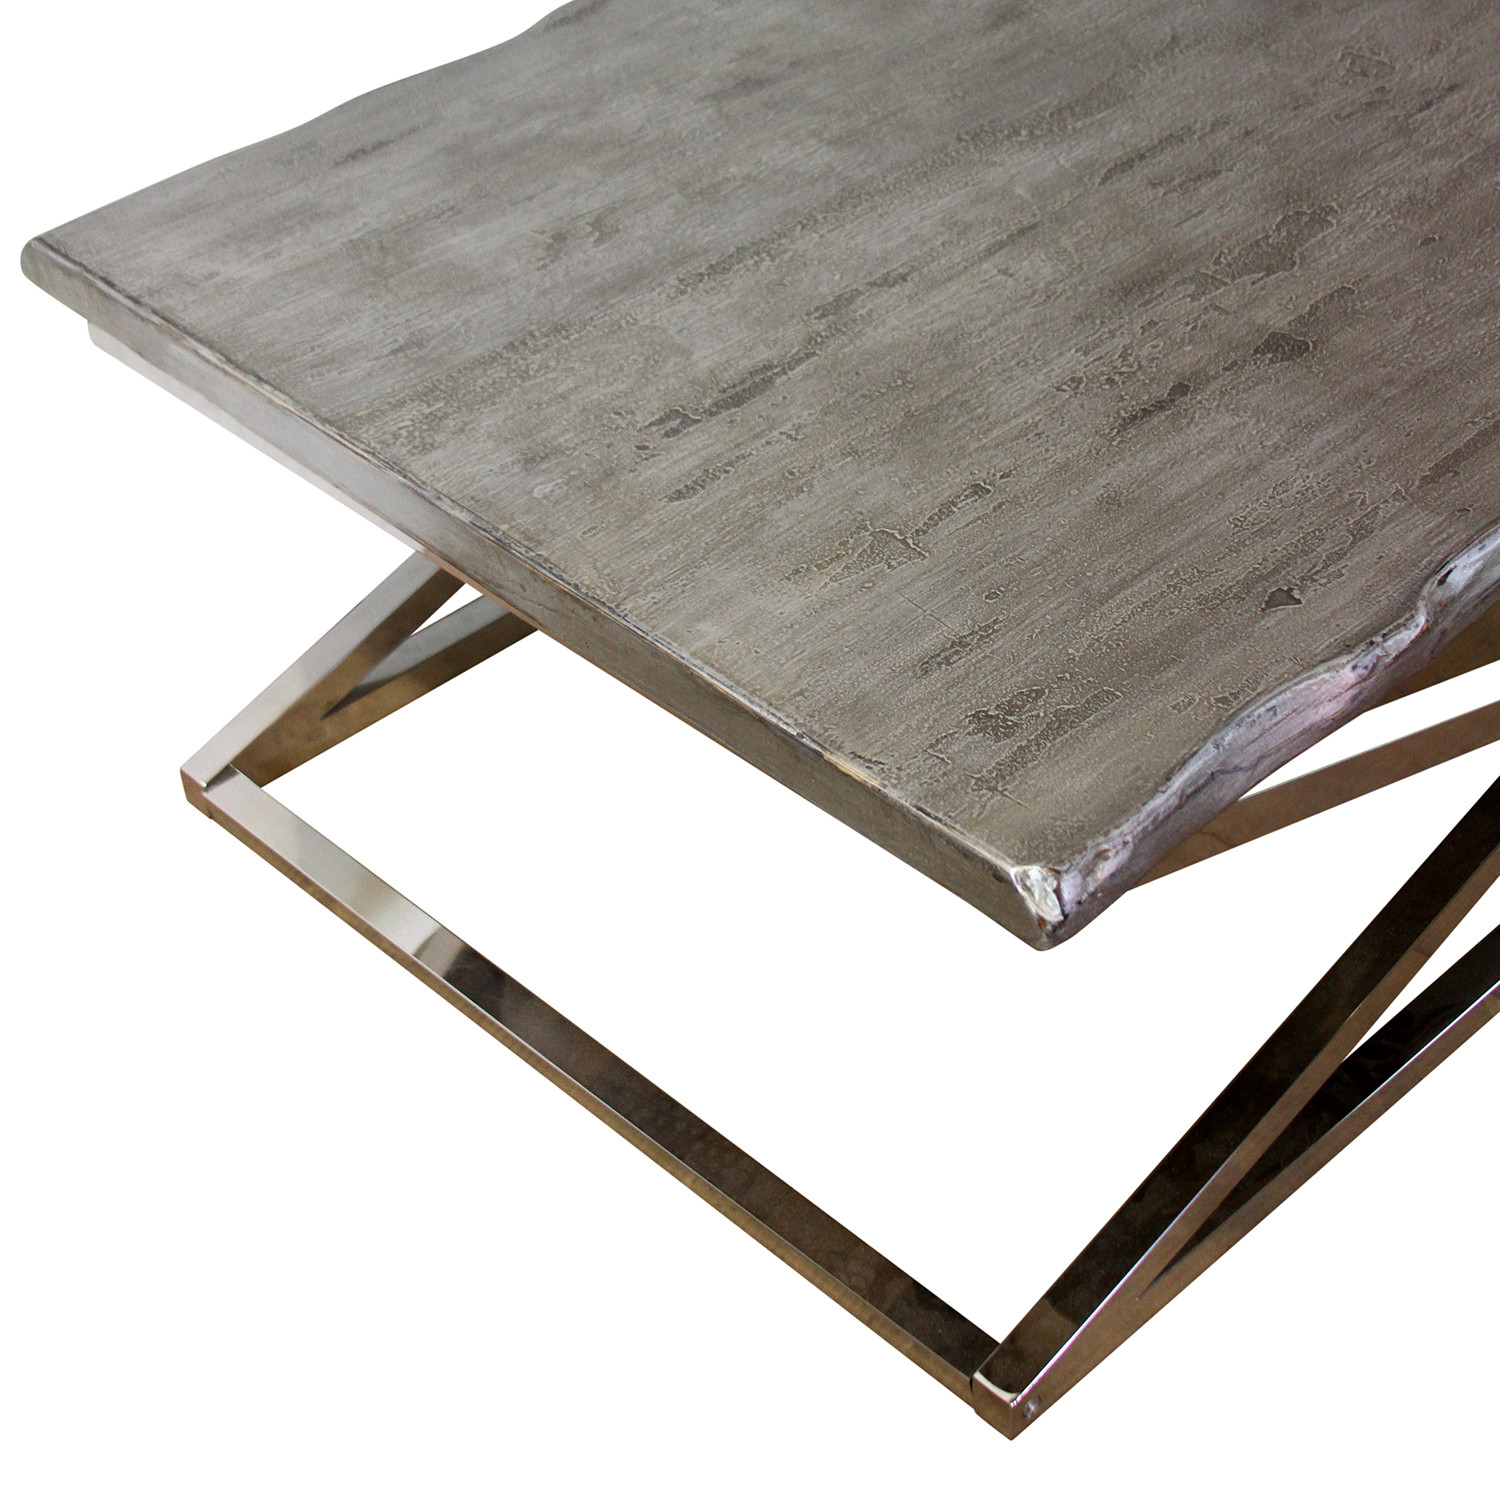 Voltin Live Edge Coffee Table with Chrome legs